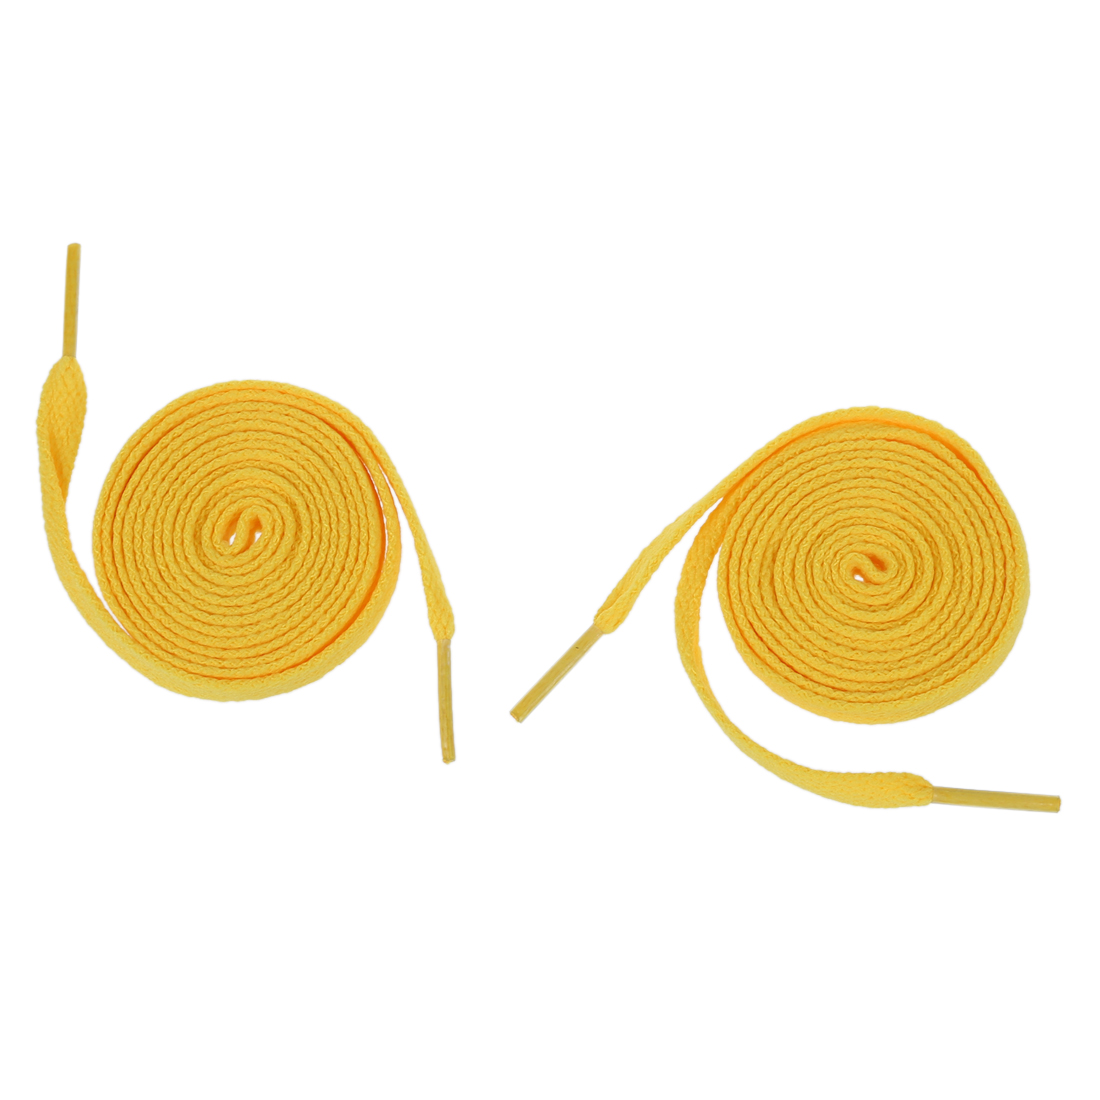 NEWBRAND Pair Yellow Flat Strings Wide Shoelaces For  Shoes